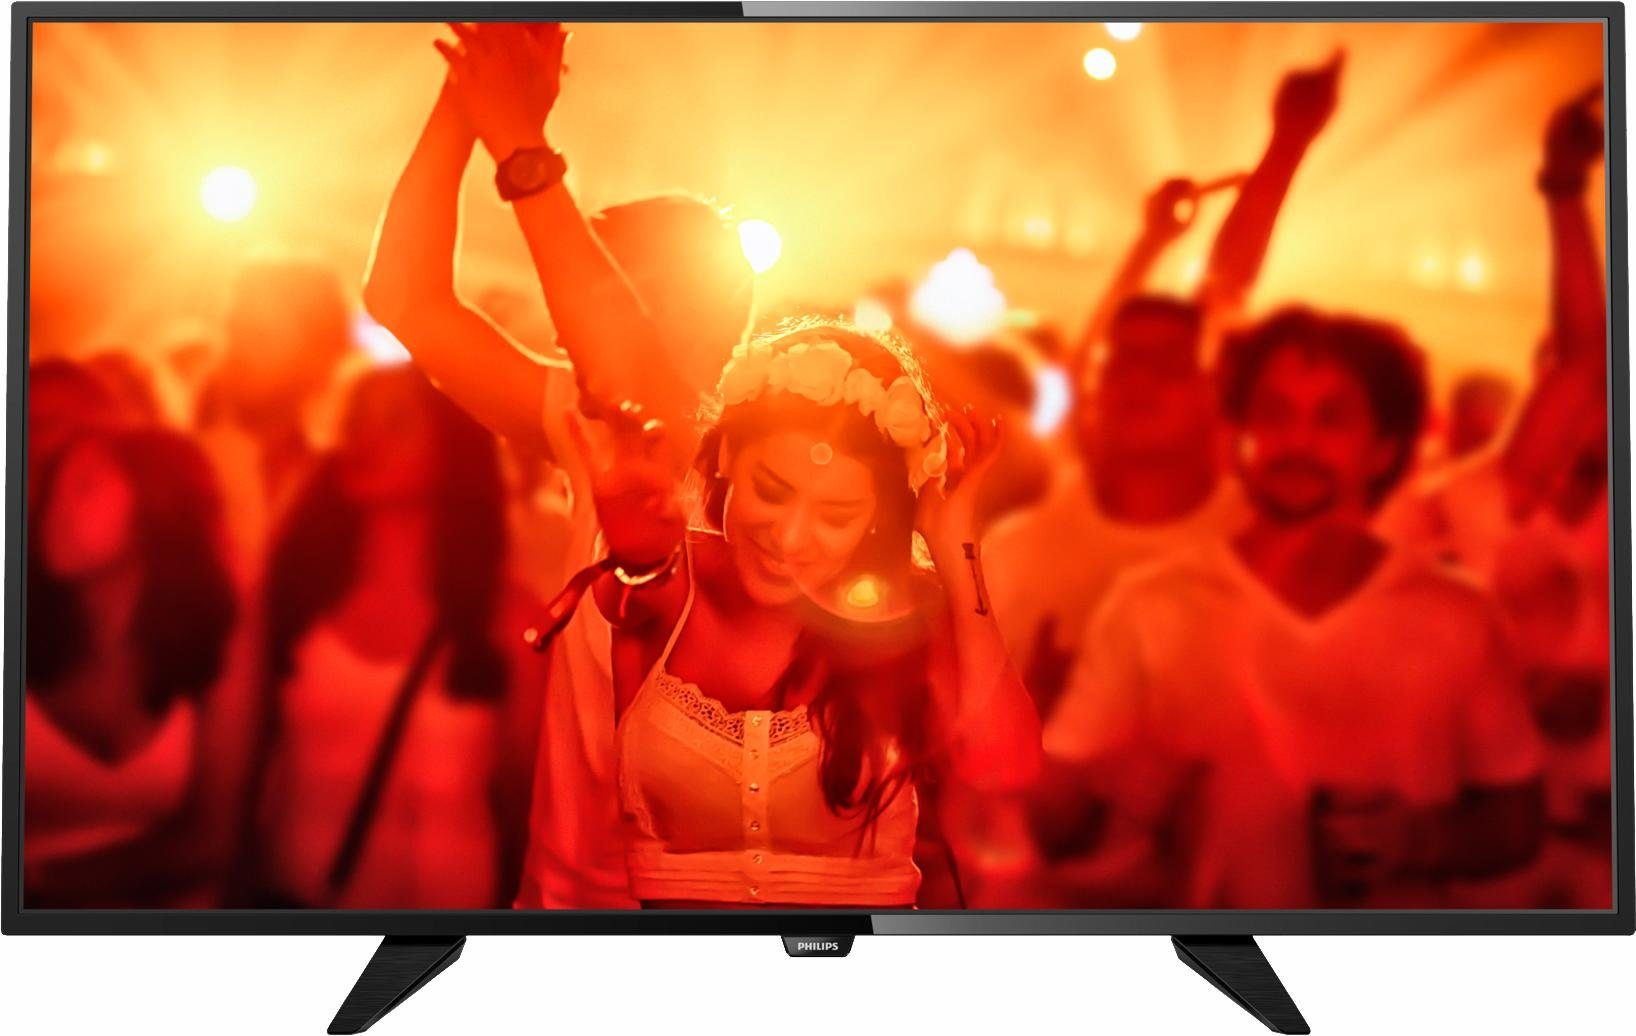 Philips 32PHK4101/12, LED Fernseher, 80 cm (32 Zoll), HD-ready 720p